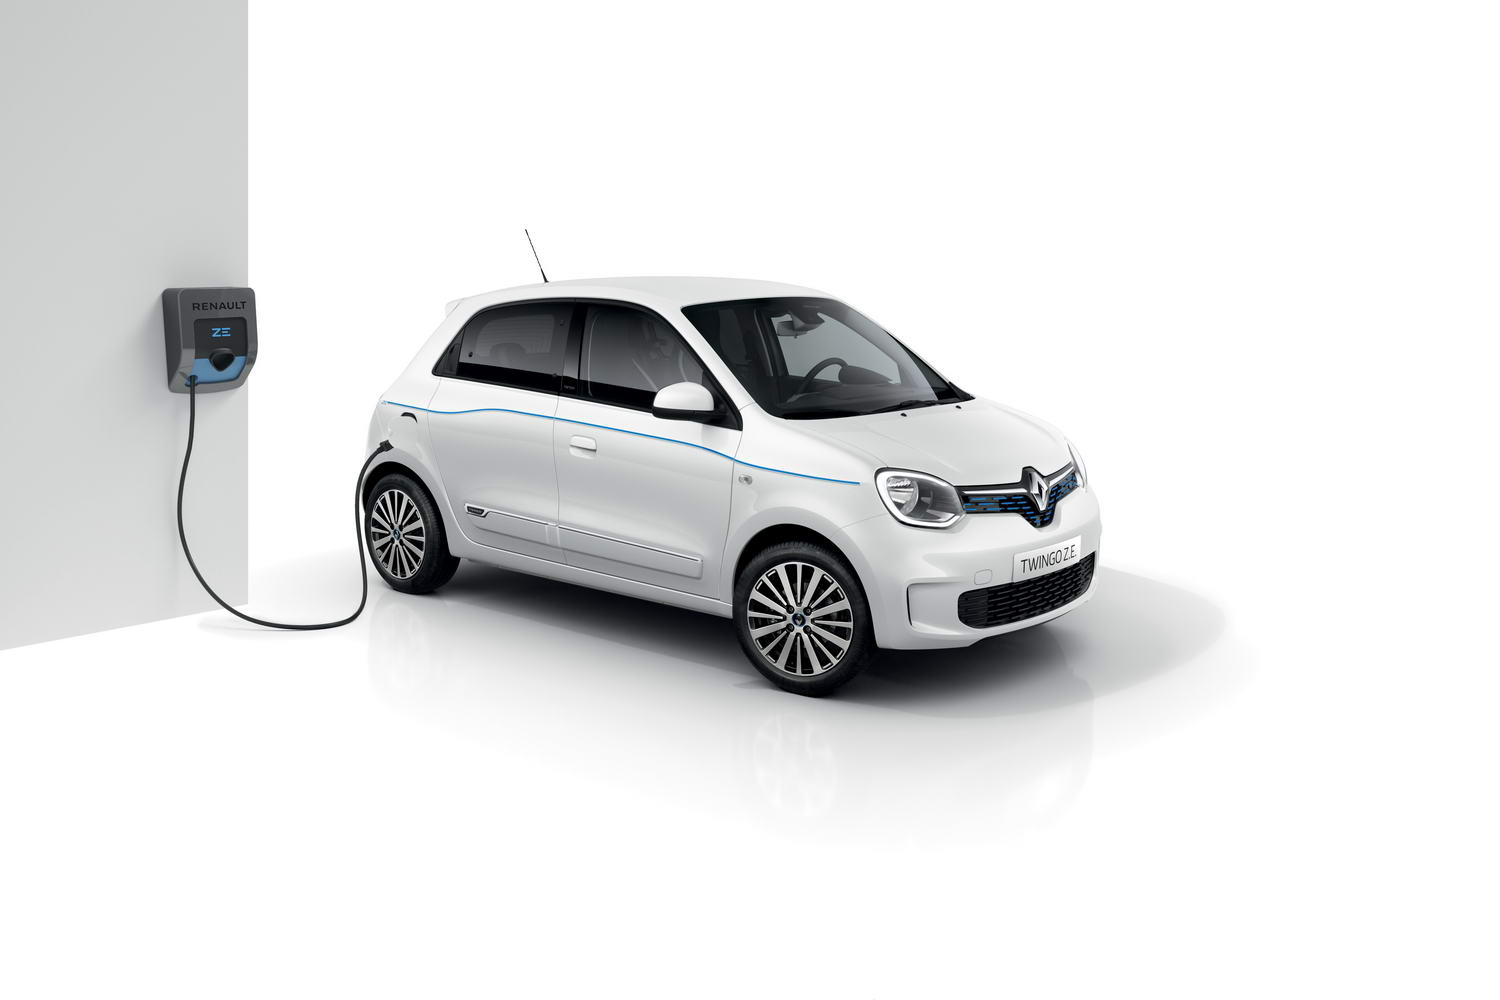 Car News | Electric Renault Twingo to debut in March | CompleteCar.ie